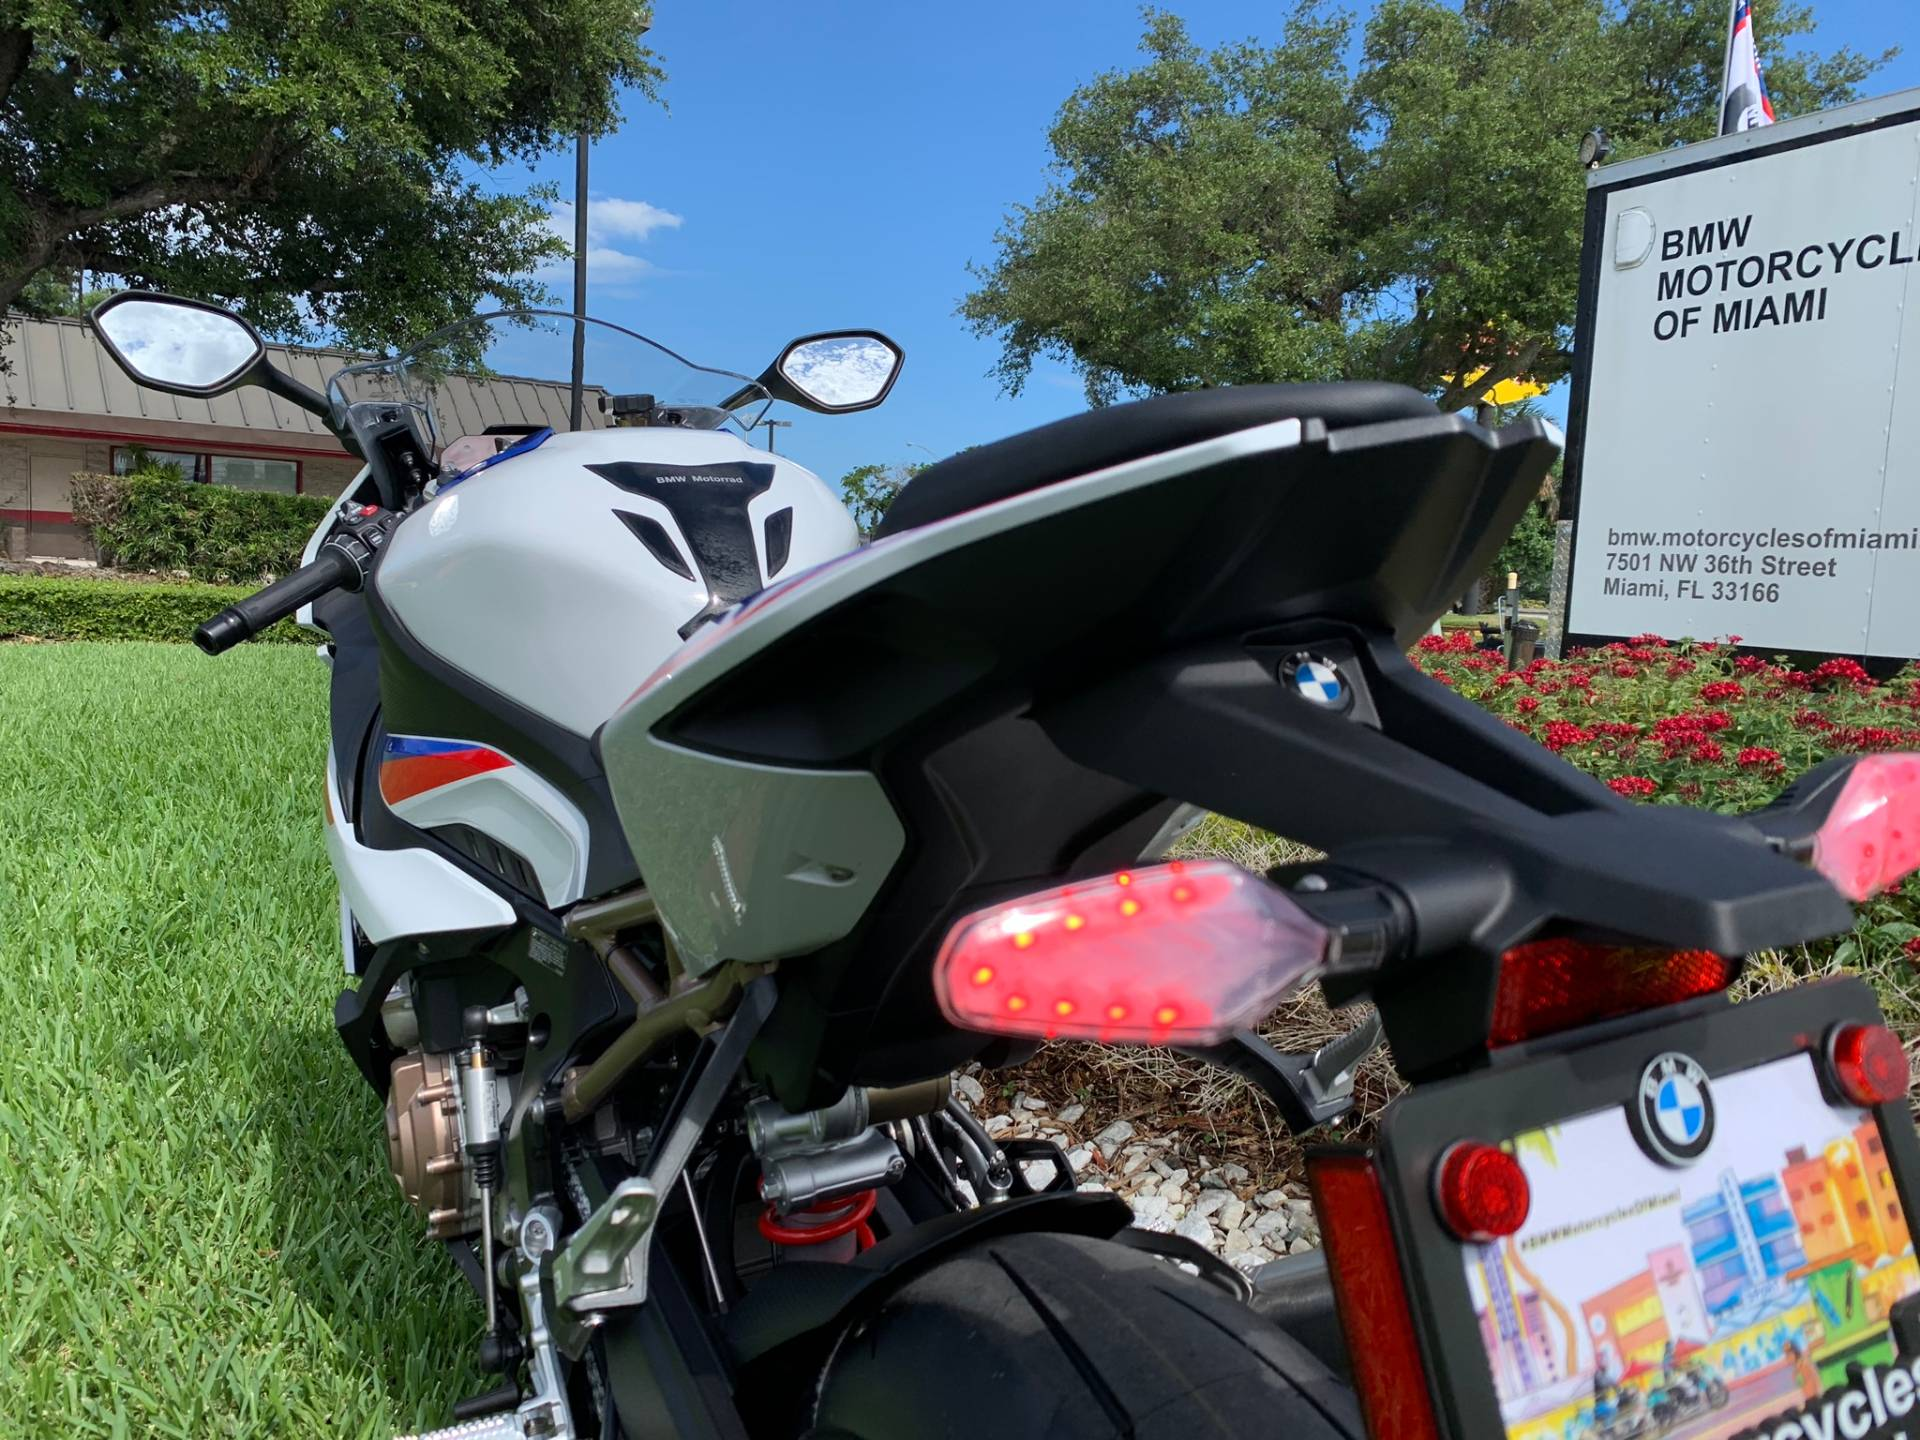 New 2020 BMW S 1000 RR for sale, BMW S 1000RR for sale, BMW Motorcycle S1000RR, new BMW RR, Sport. BMW Motorcycles of Miami, Motorcycles of Miami, Motorcycles Miami, New Motorcycles, Used Motorcycles, pre-owned. #BMWMotorcyclesOfMiami #MotorcyclesOfMiami #MotorcyclesMiami - Photo 16